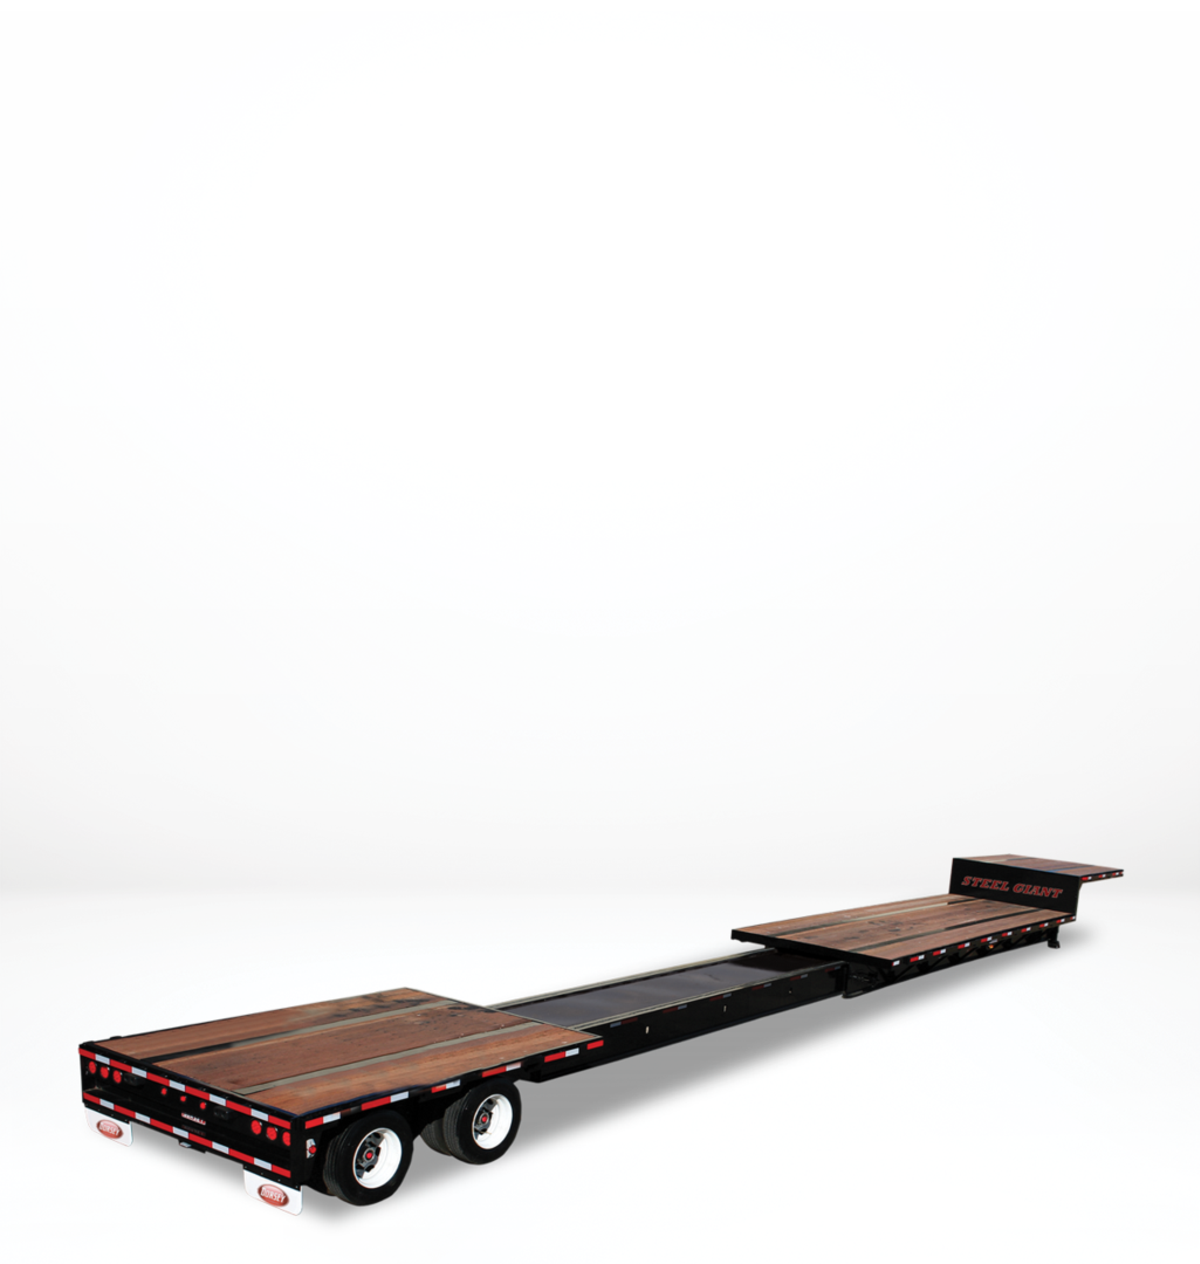 Trailers, Truck Trailer Manufacturing | Dorsey Trailer on motorcycle wiring diagram, truck wiring diagram, quad wiring diagram, rv wiring diagram, fan wiring diagram, jeep wiring diagram, flatbed trailer cover, phillips 7-way wiring diagram, flatbed trailer wheels, tractor wiring diagram, snowmobile wiring diagram, flatbed trailer suspension, van wiring diagram, flatbed trailer lighting, crane wiring diagram, ambulance wiring diagram, loader wiring diagram, light wiring diagram, forklift wiring diagram, flatbed trailer parts,